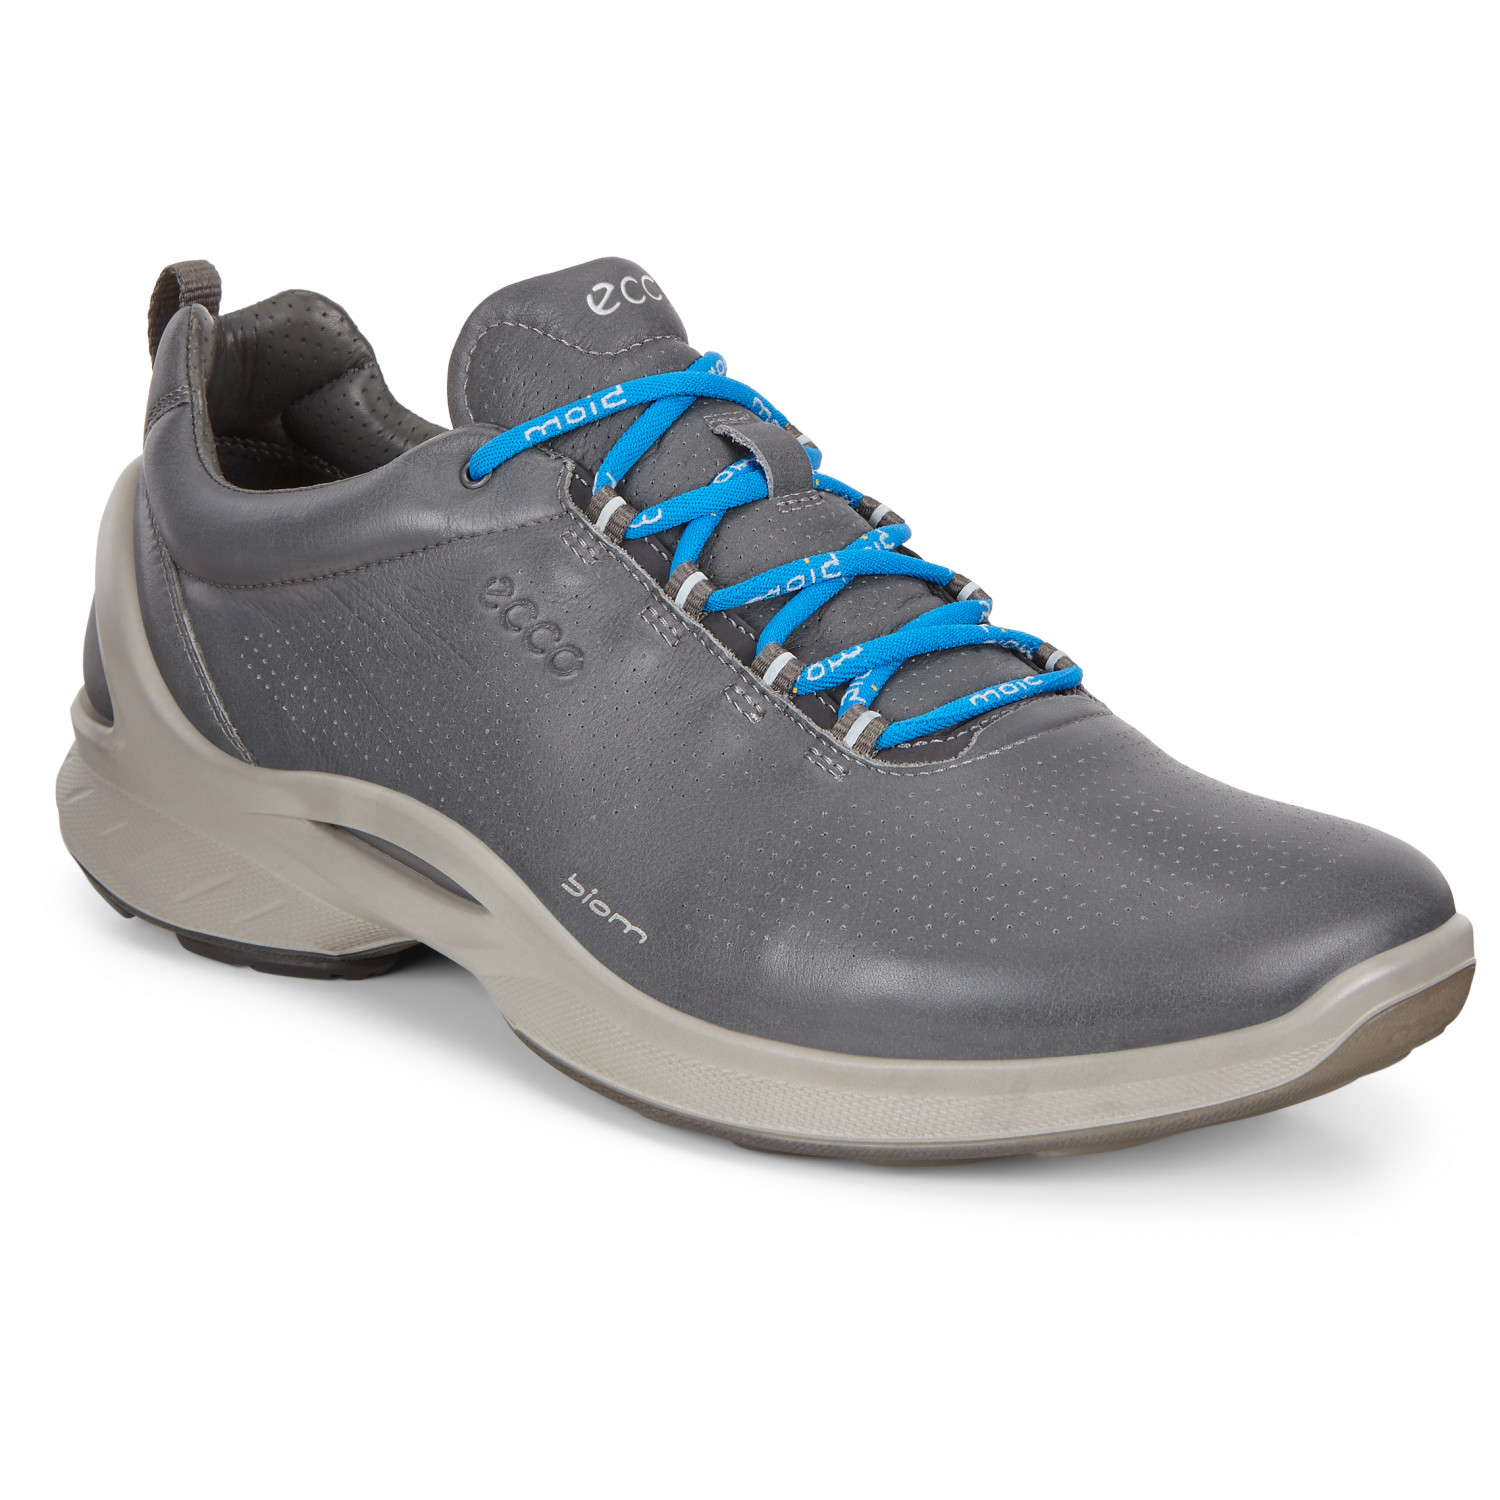 Chaussures Fjuel Yak Ecco Shadow43eu Biom Multisports Leather Dark xdWQCorBe